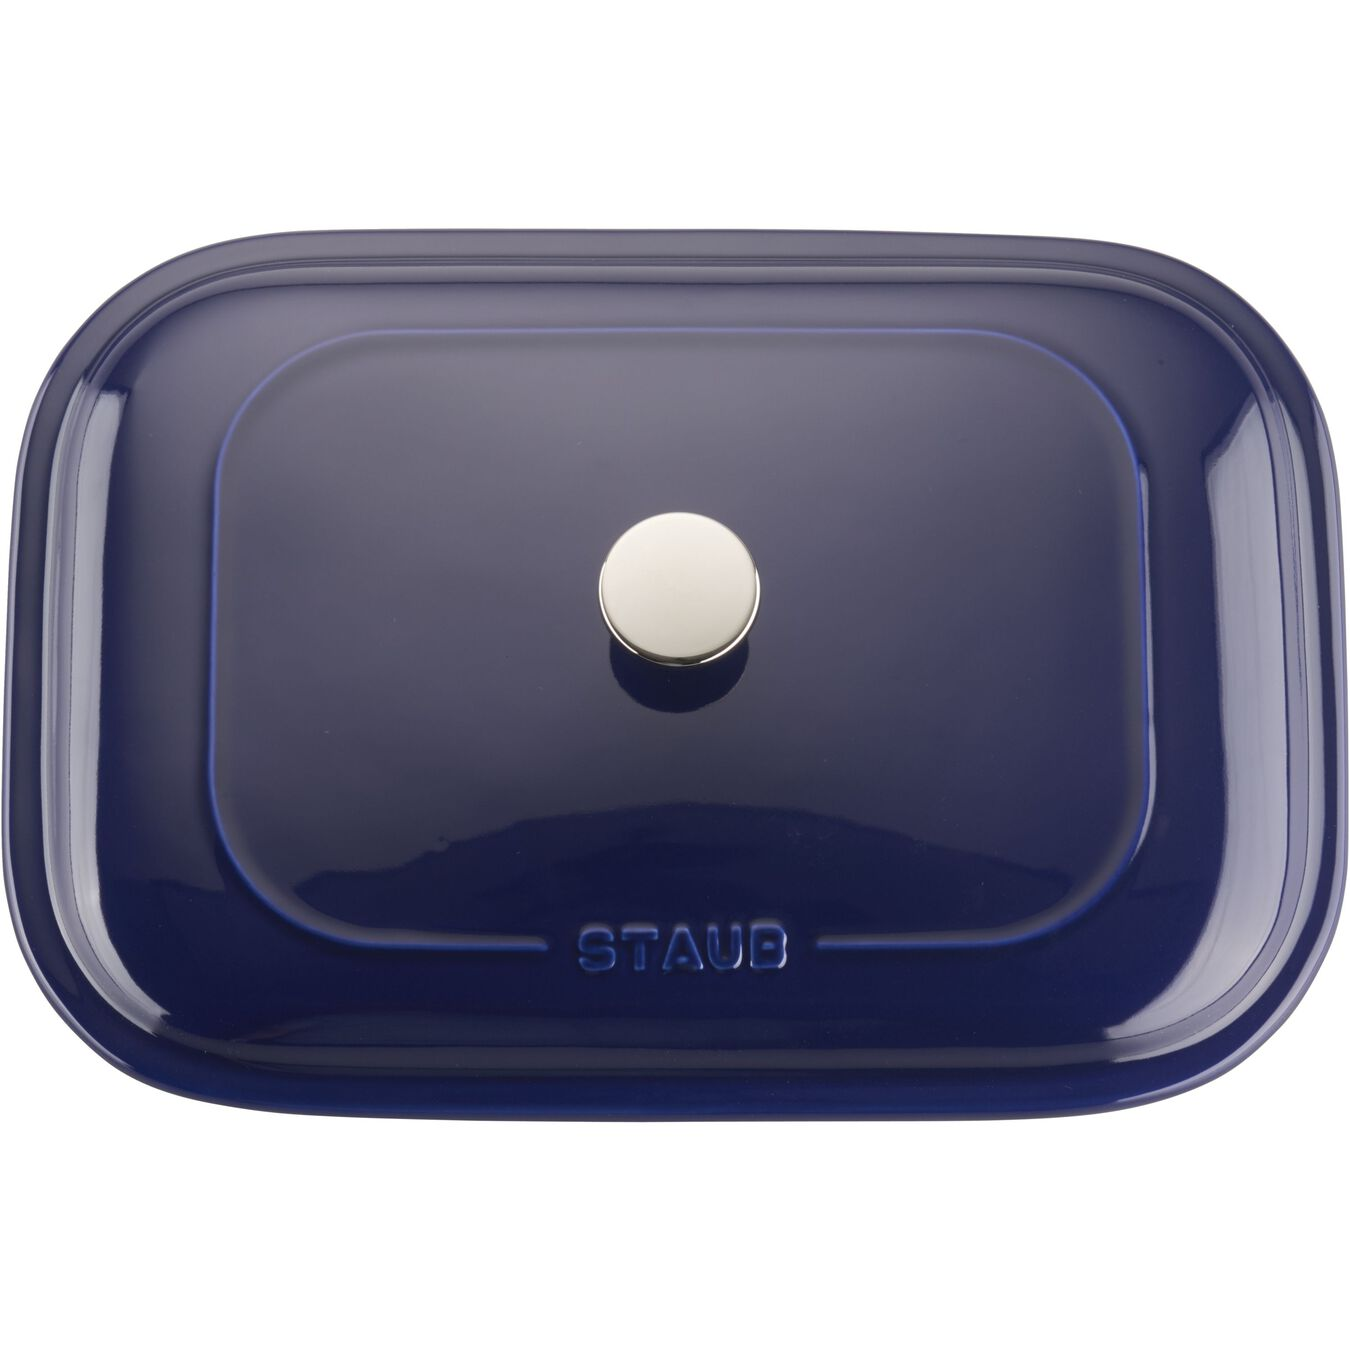 12-inch x 8-inch Rectangular Covered Baking Dish - Dark Blue,,large 2